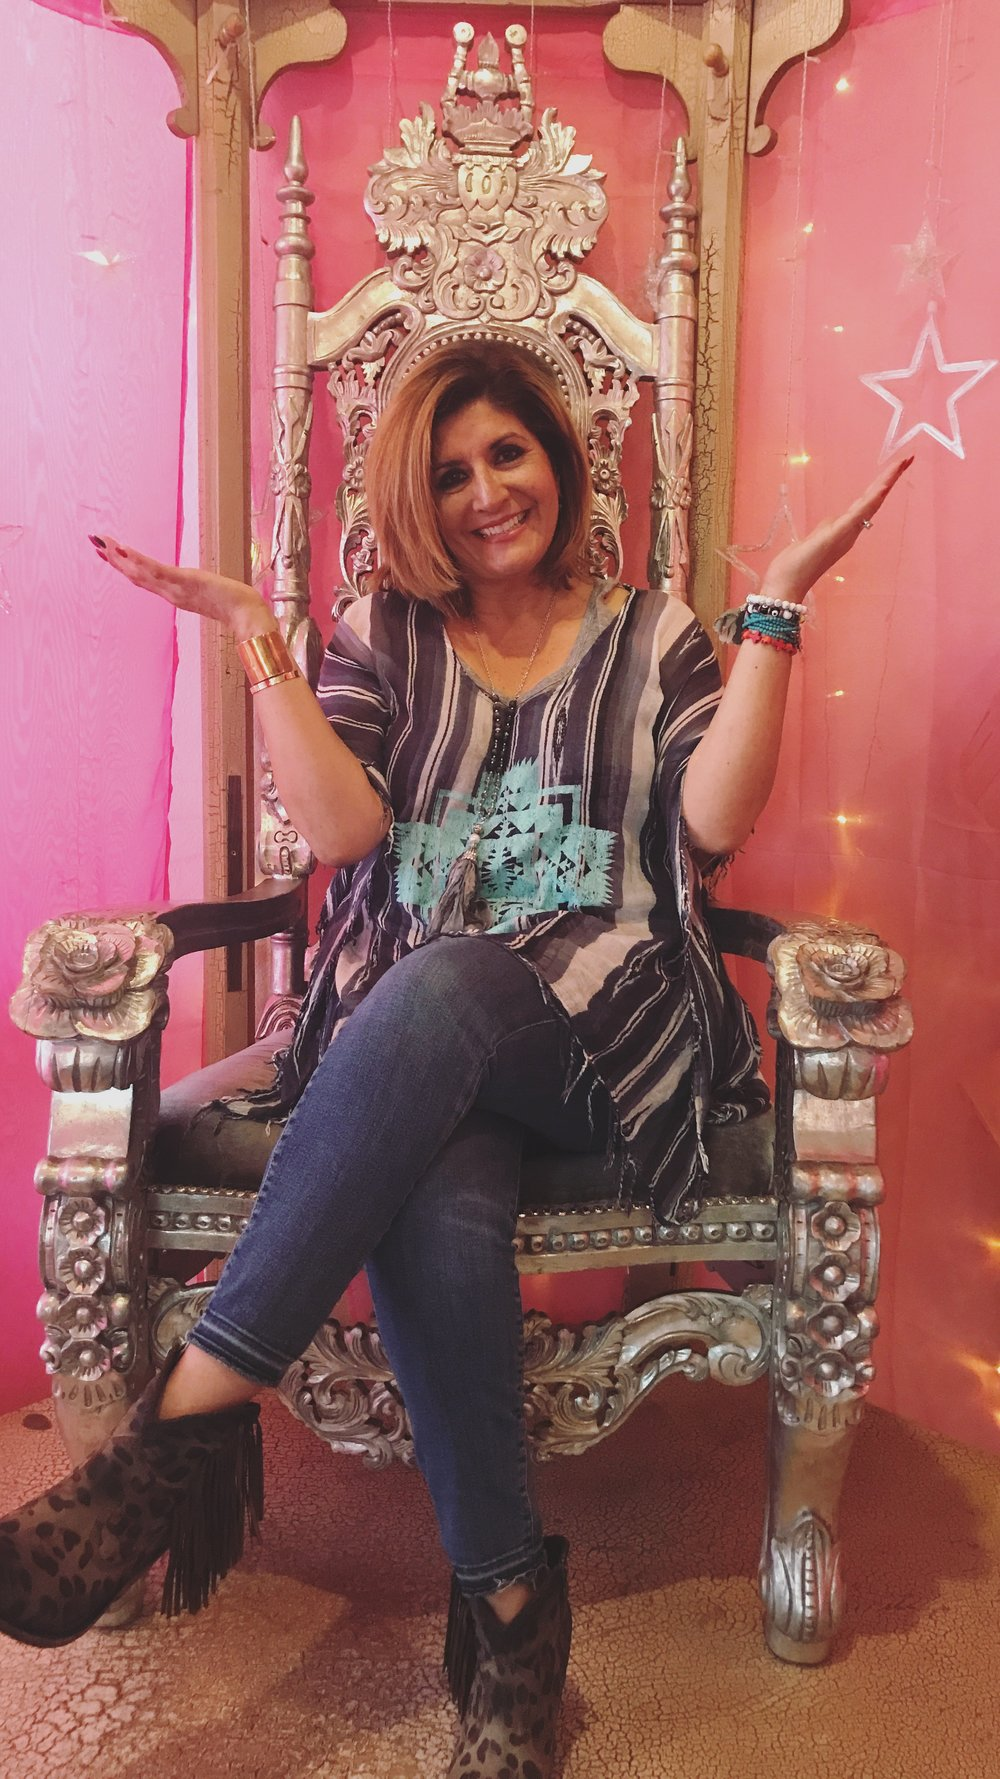 5. Find a 'Jo Mama'   - Okay, this one may be hard to find because this woman is so one-of-a-kind! But I think everyone can agree... family and friends do more for a home than all the material items inside combined. Moral of the story, don't do the fun decorating alone! NOTE: This pink glittery throne is not part of my home... although I really wish it was.